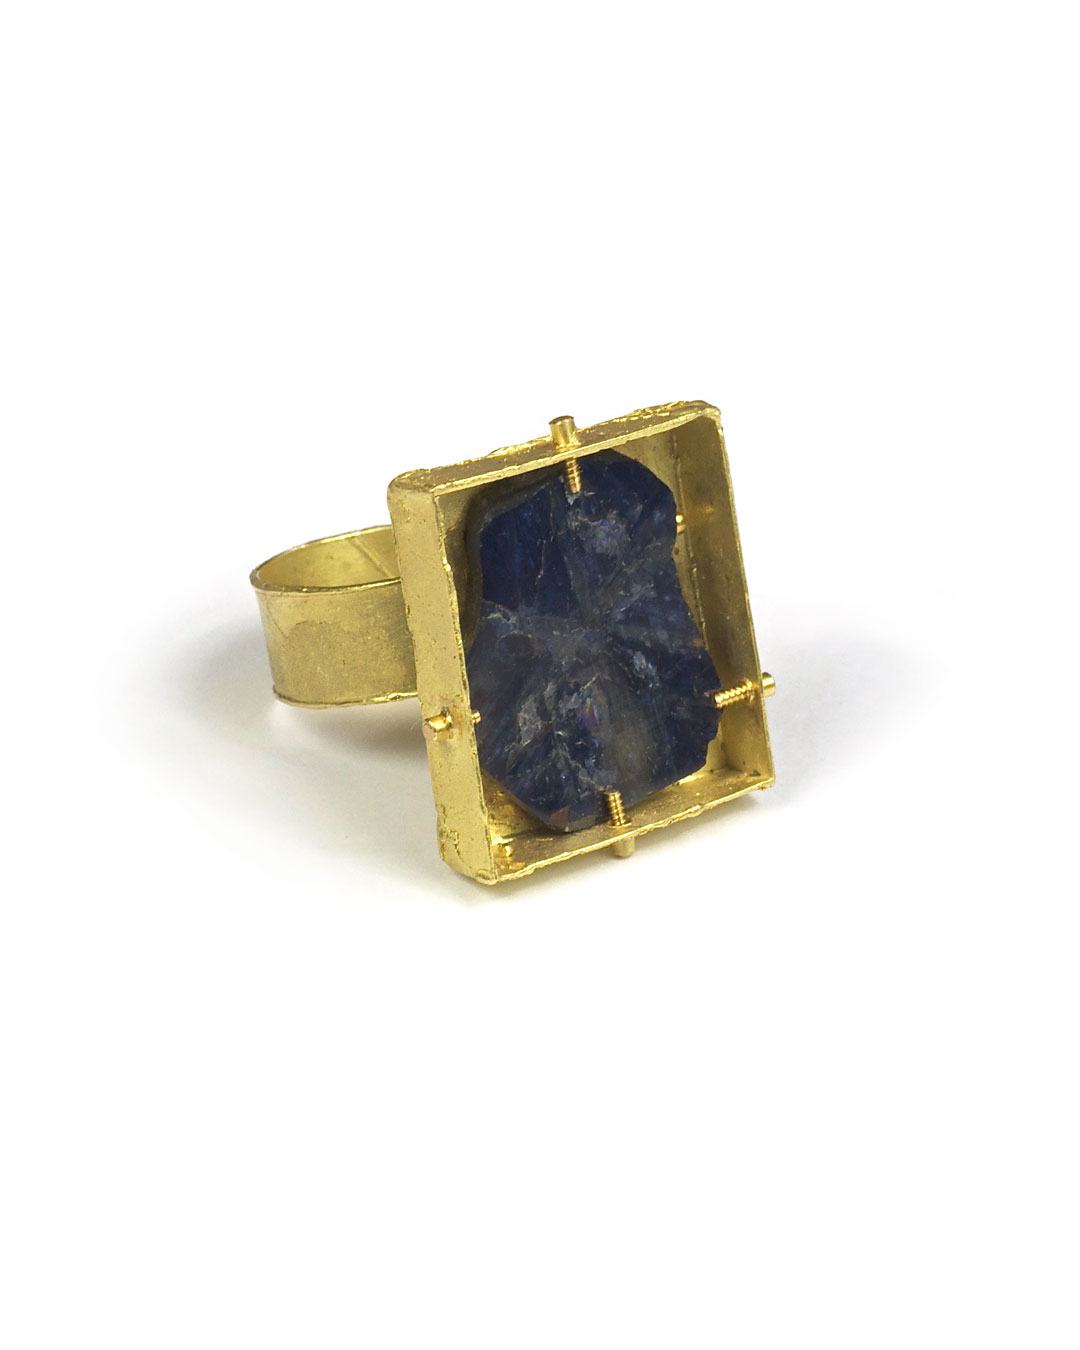 Andrea Wippermann, untitled, 2004, ring; 18ct gold, sapphire, 35 x 23 x 25 mm, €2550